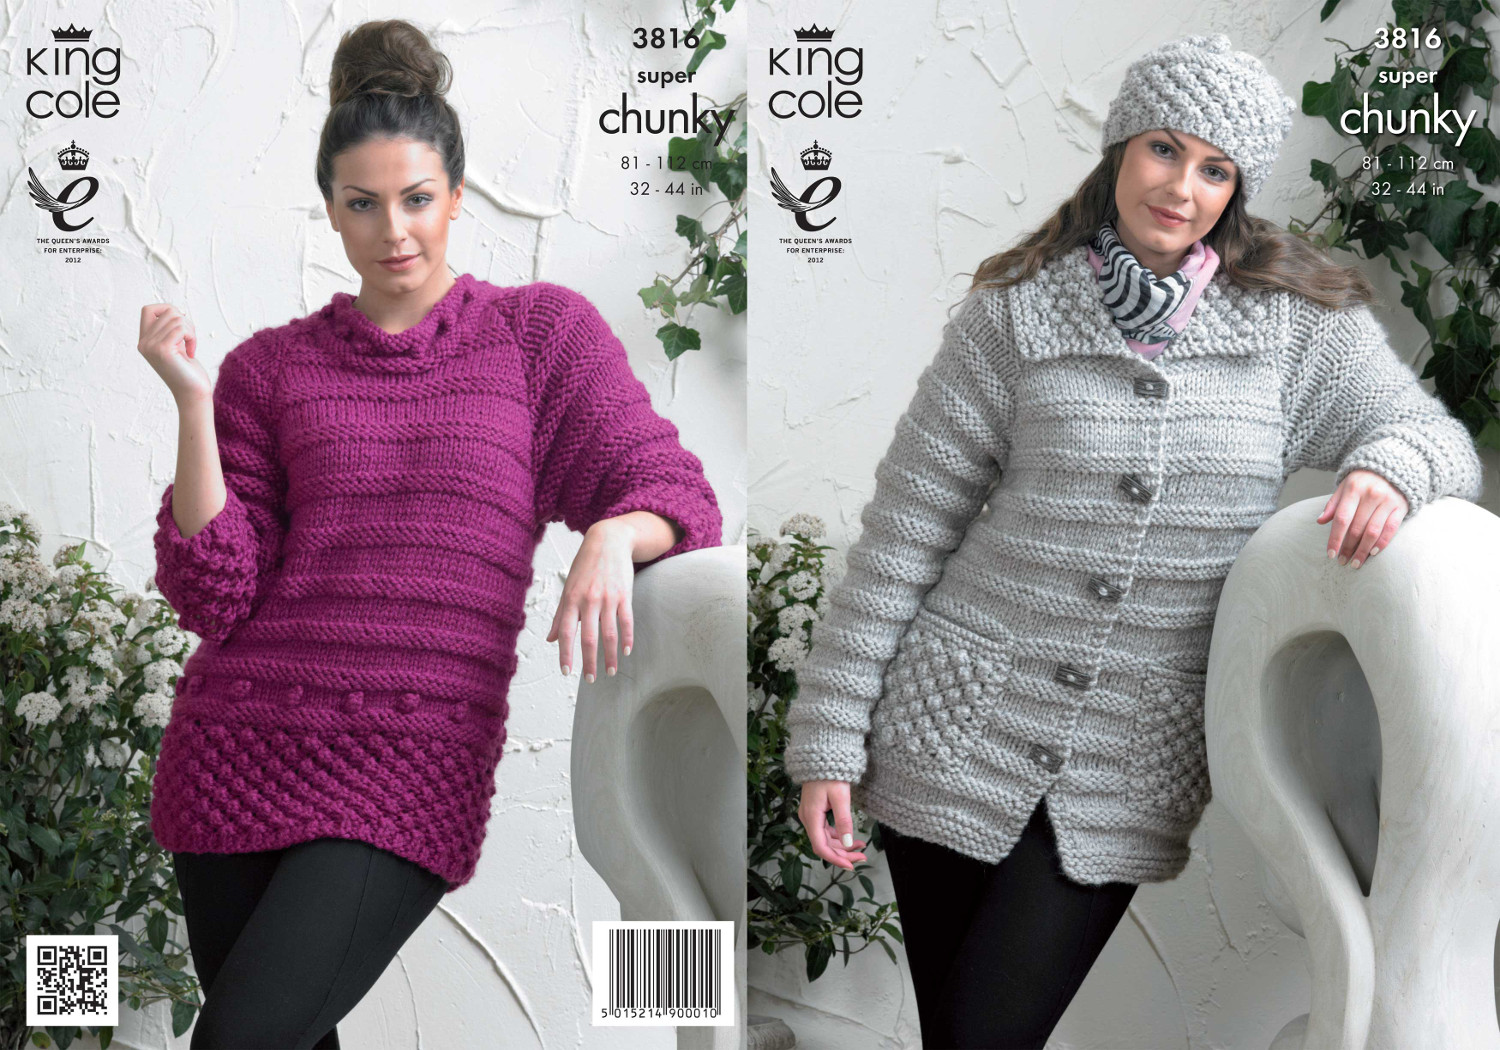 Chunky Knit Jumper Pattern Free : Super Chunky Knitting Pattern Ladies Womens Jacket Sweater Hat King Cole 3816